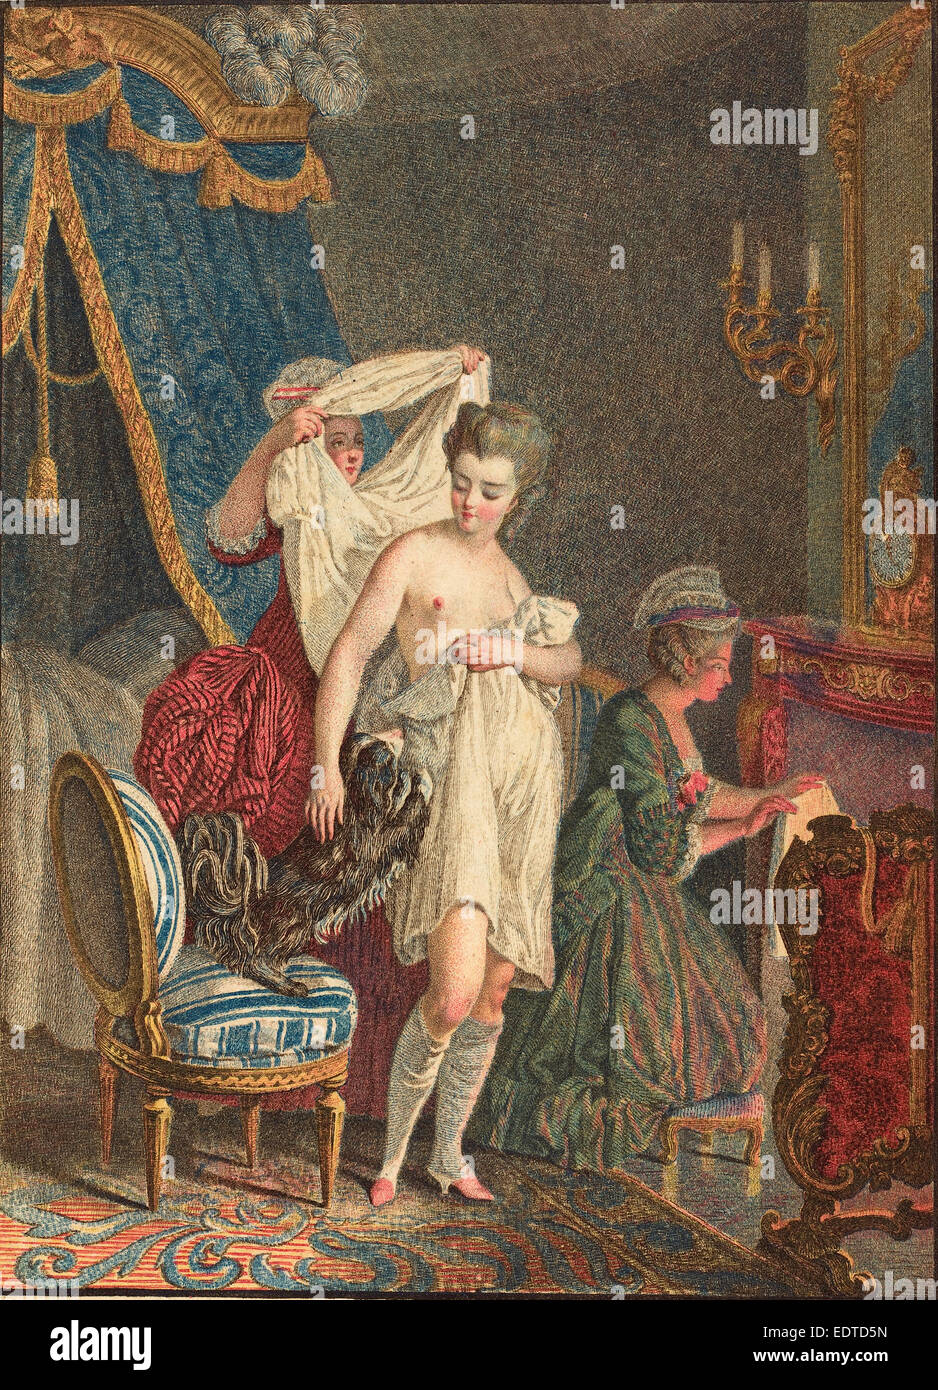 Nicolas Francois Regnault (French, 1746 - c. 1810), Le Lever, color stipple etching and etching Stock Photo